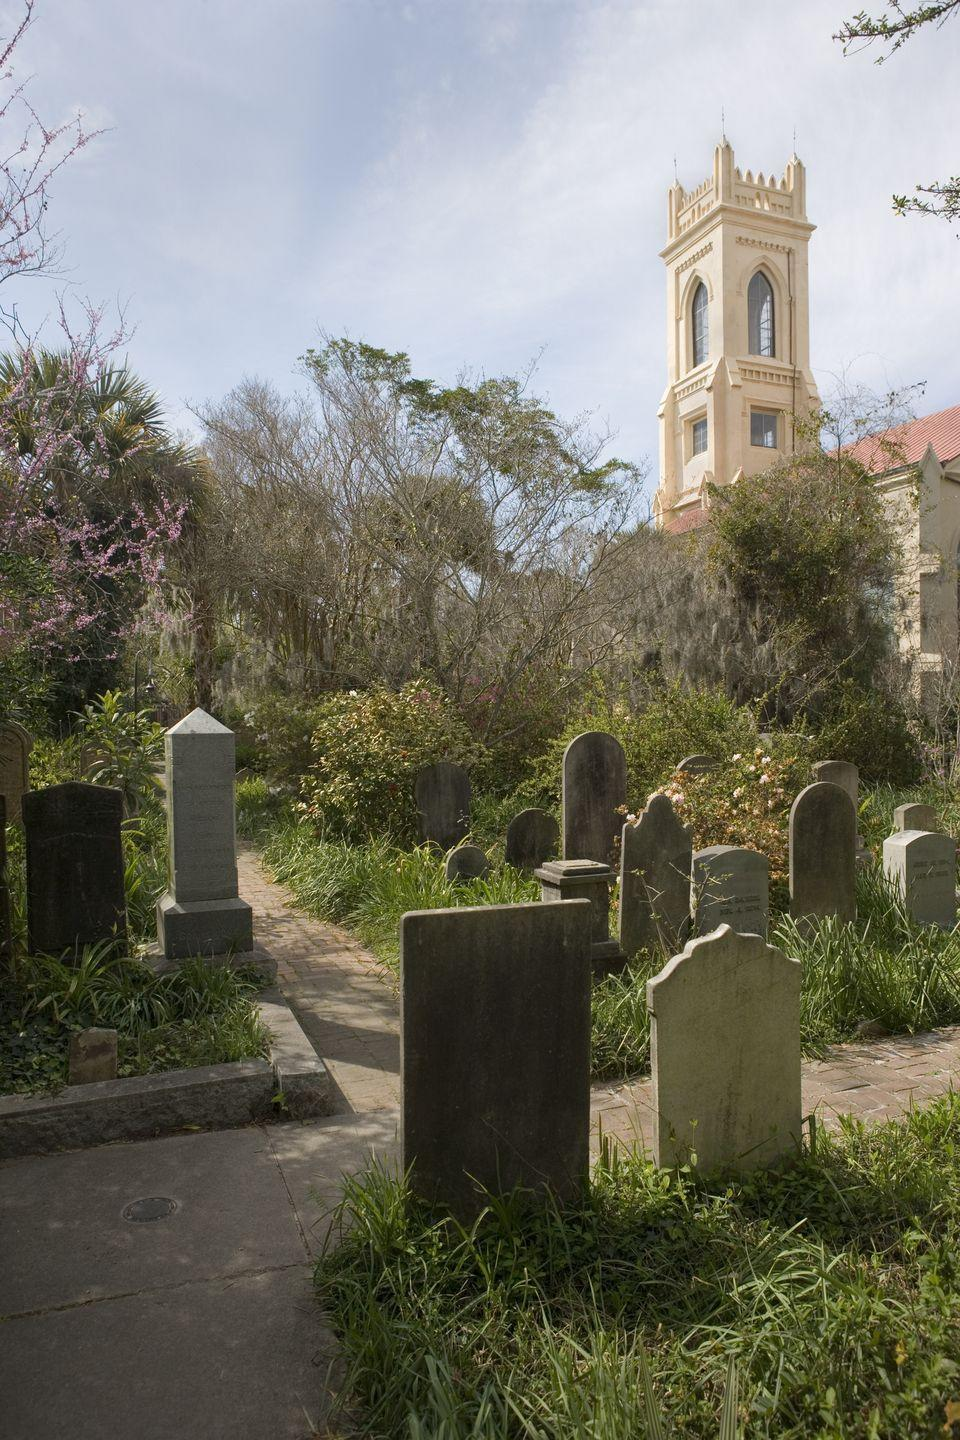 """<p>Take a 90-minute evening stroll through Charleston's notoriously haunted Unitarian Church Graveyard, which is the oldest Unitarian church in the South and known as a hotbed of creepy paranormal activity.</p><p><a class=""""link rapid-noclick-resp"""" href=""""https://go.redirectingat.com?id=74968X1596630&url=https%3A%2F%2Fwww.tripadvisor.com%2FAttractionProductReview-g54171-d11482881-Ghosts_of_Charleston_Night_Time_Walking_Tour_with_Unitarian_Church_Graveyard-Charle.html&sref=https%3A%2F%2Fwww.redbookmag.com%2Flife%2Fg37623207%2Fghost-tours-near-me%2F"""" rel=""""nofollow noopener"""" target=""""_blank"""" data-ylk=""""slk:LEARN MORE"""">LEARN MORE</a></p>"""